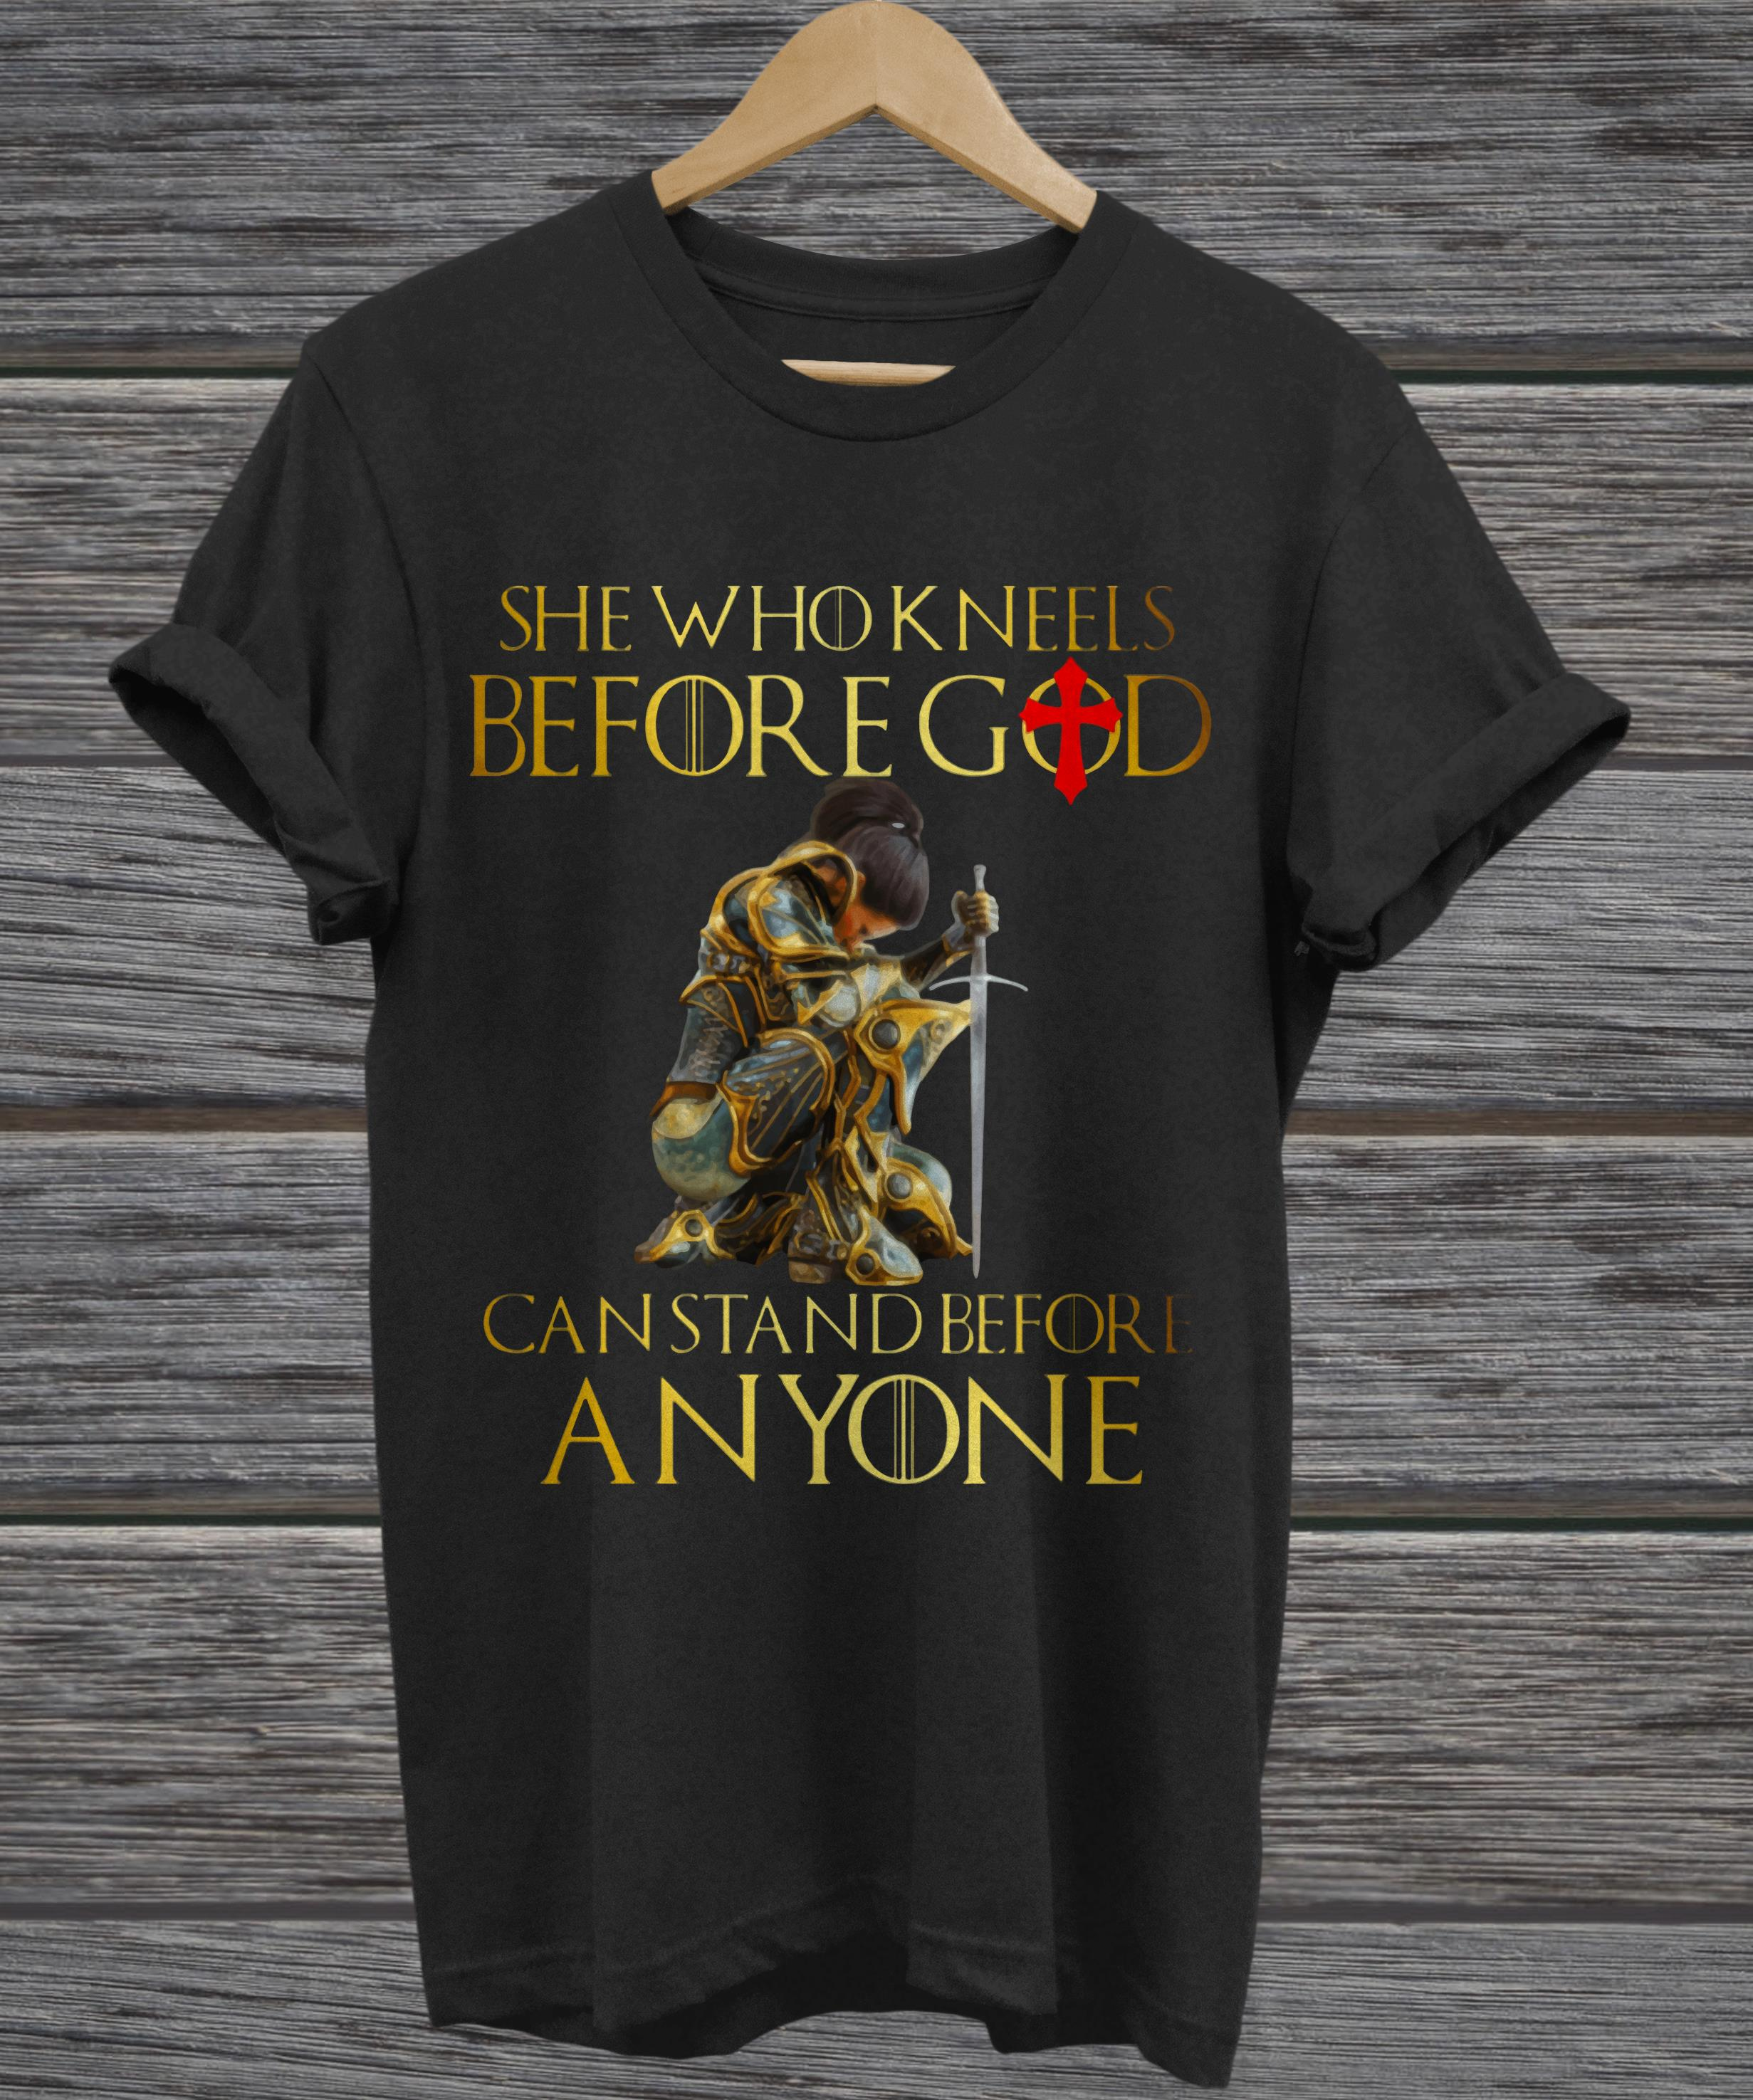 She who kneels before god can stand before anyone v-neck